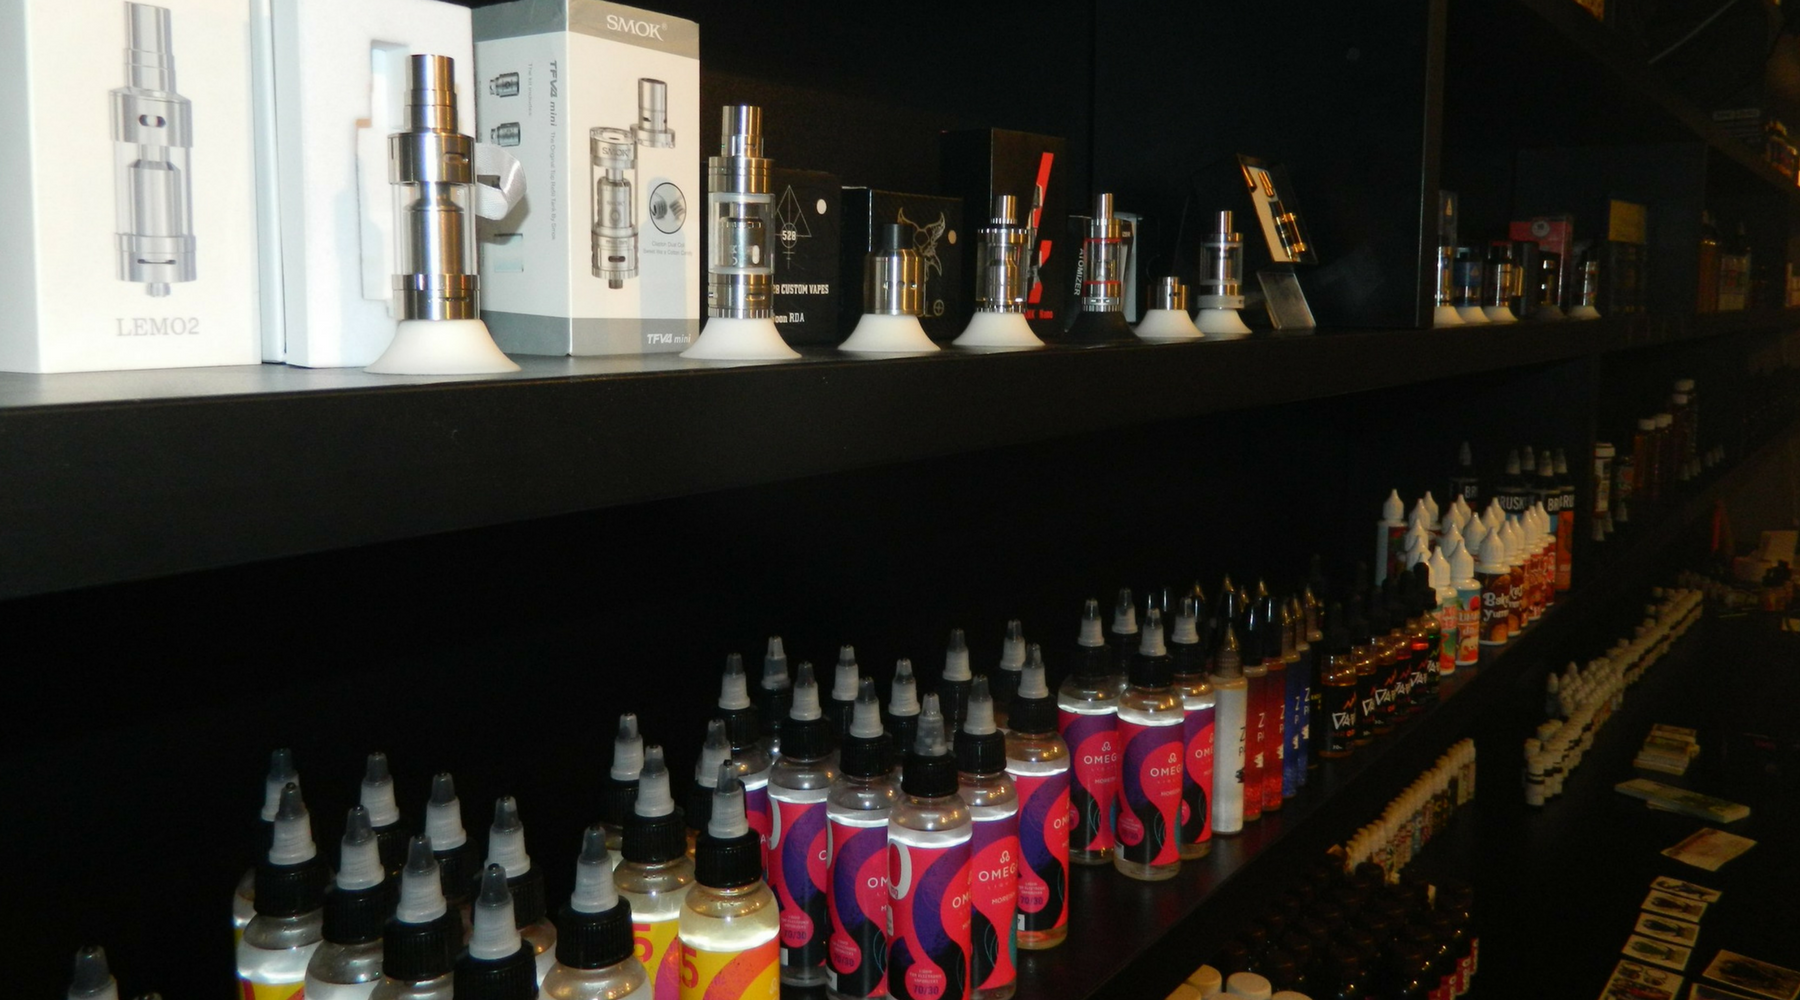 Vape Shop in Basingstoke & Deane, UK